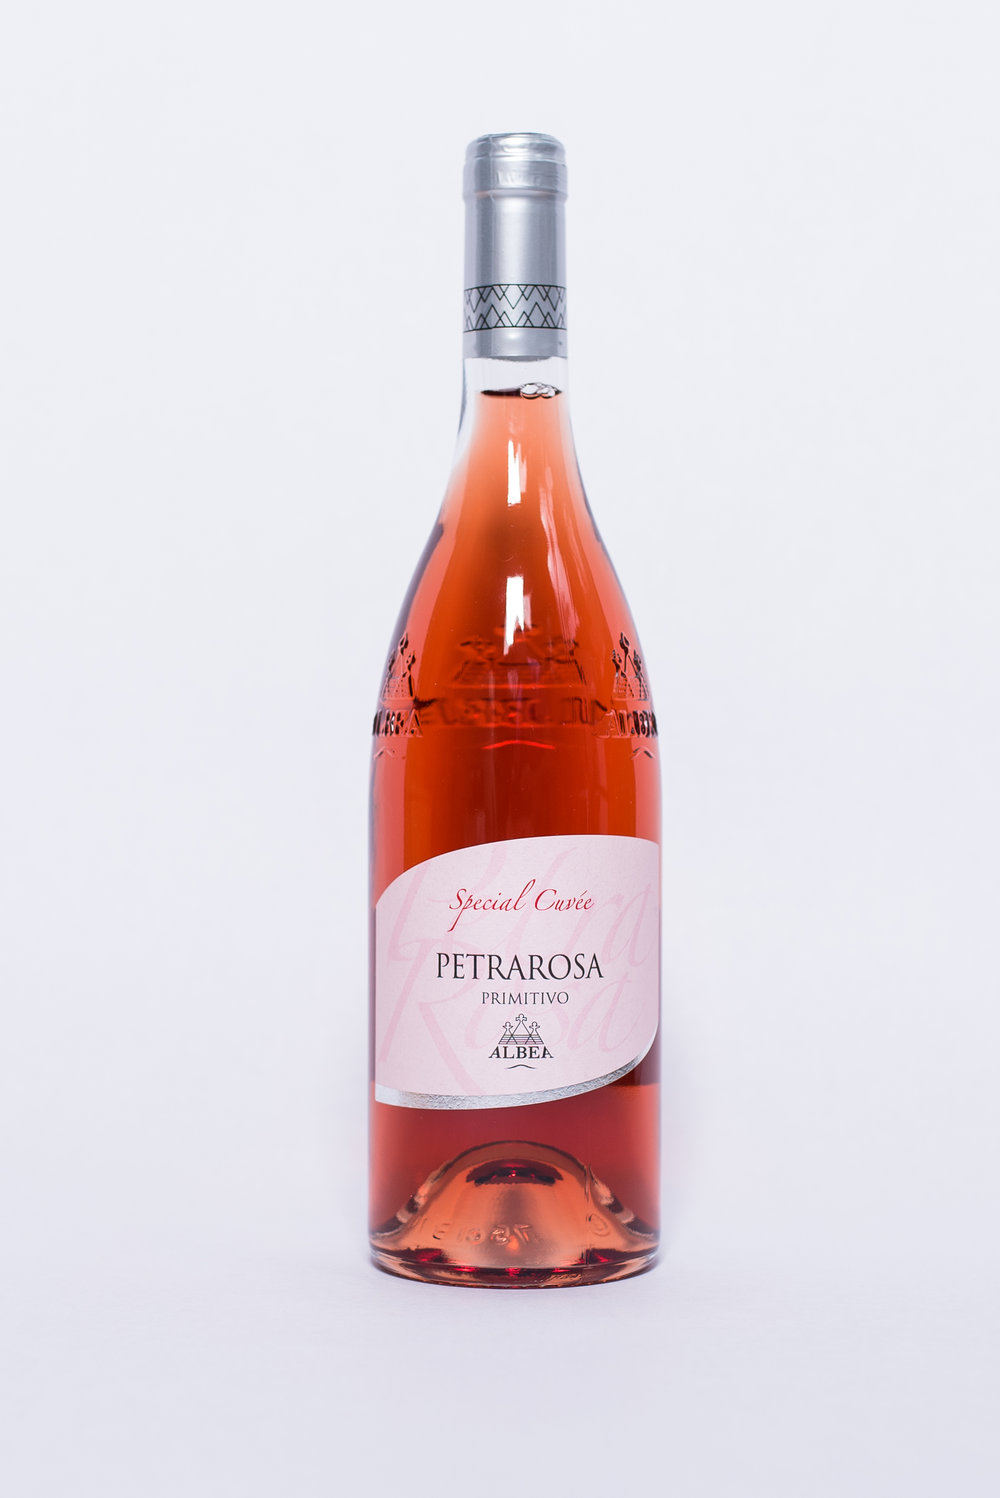 Petrarosa Rosato    Producer:   Cantina Albea    Region:  Puglia  Grapes:  Primitivo di Gioia 100%  Nose:  Floral and spicy notes with slight hints of berries, wild rose and pomegranate.   Taste: F reshness and minerality well balanced by the volume and final taste of outstanding elegance wine.